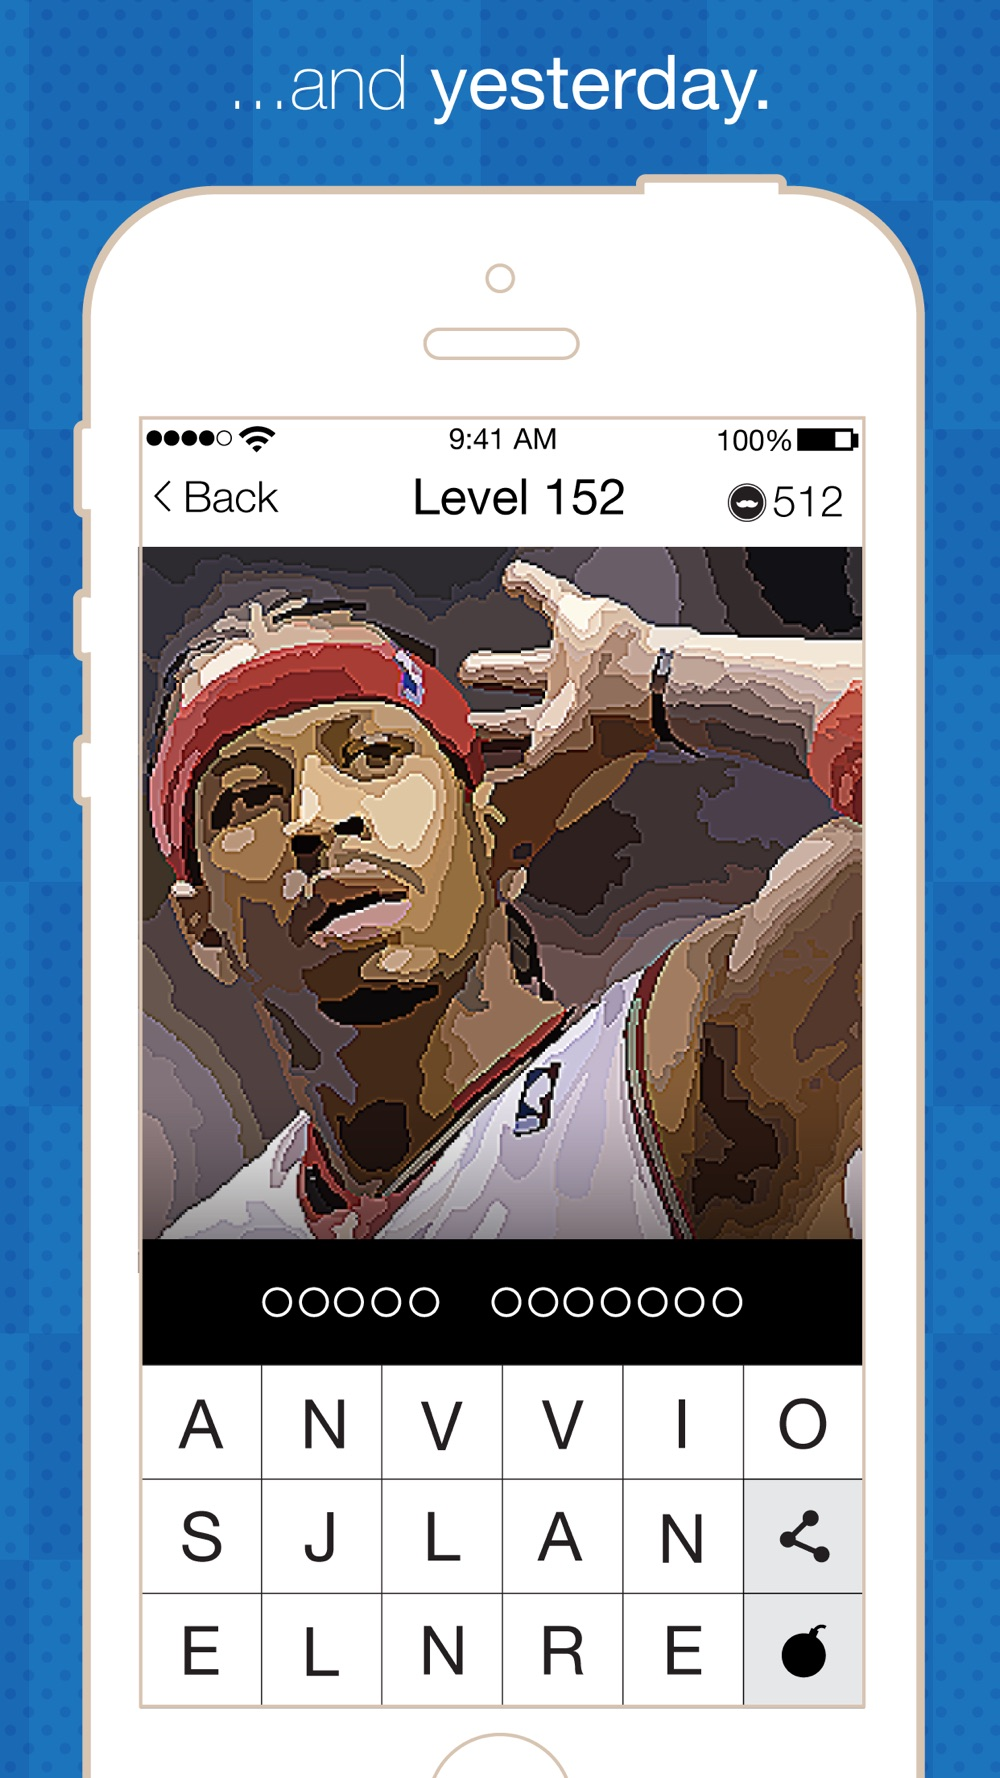 Hack tool for Who's the Baller? - Guess the Basketball Player Word Game